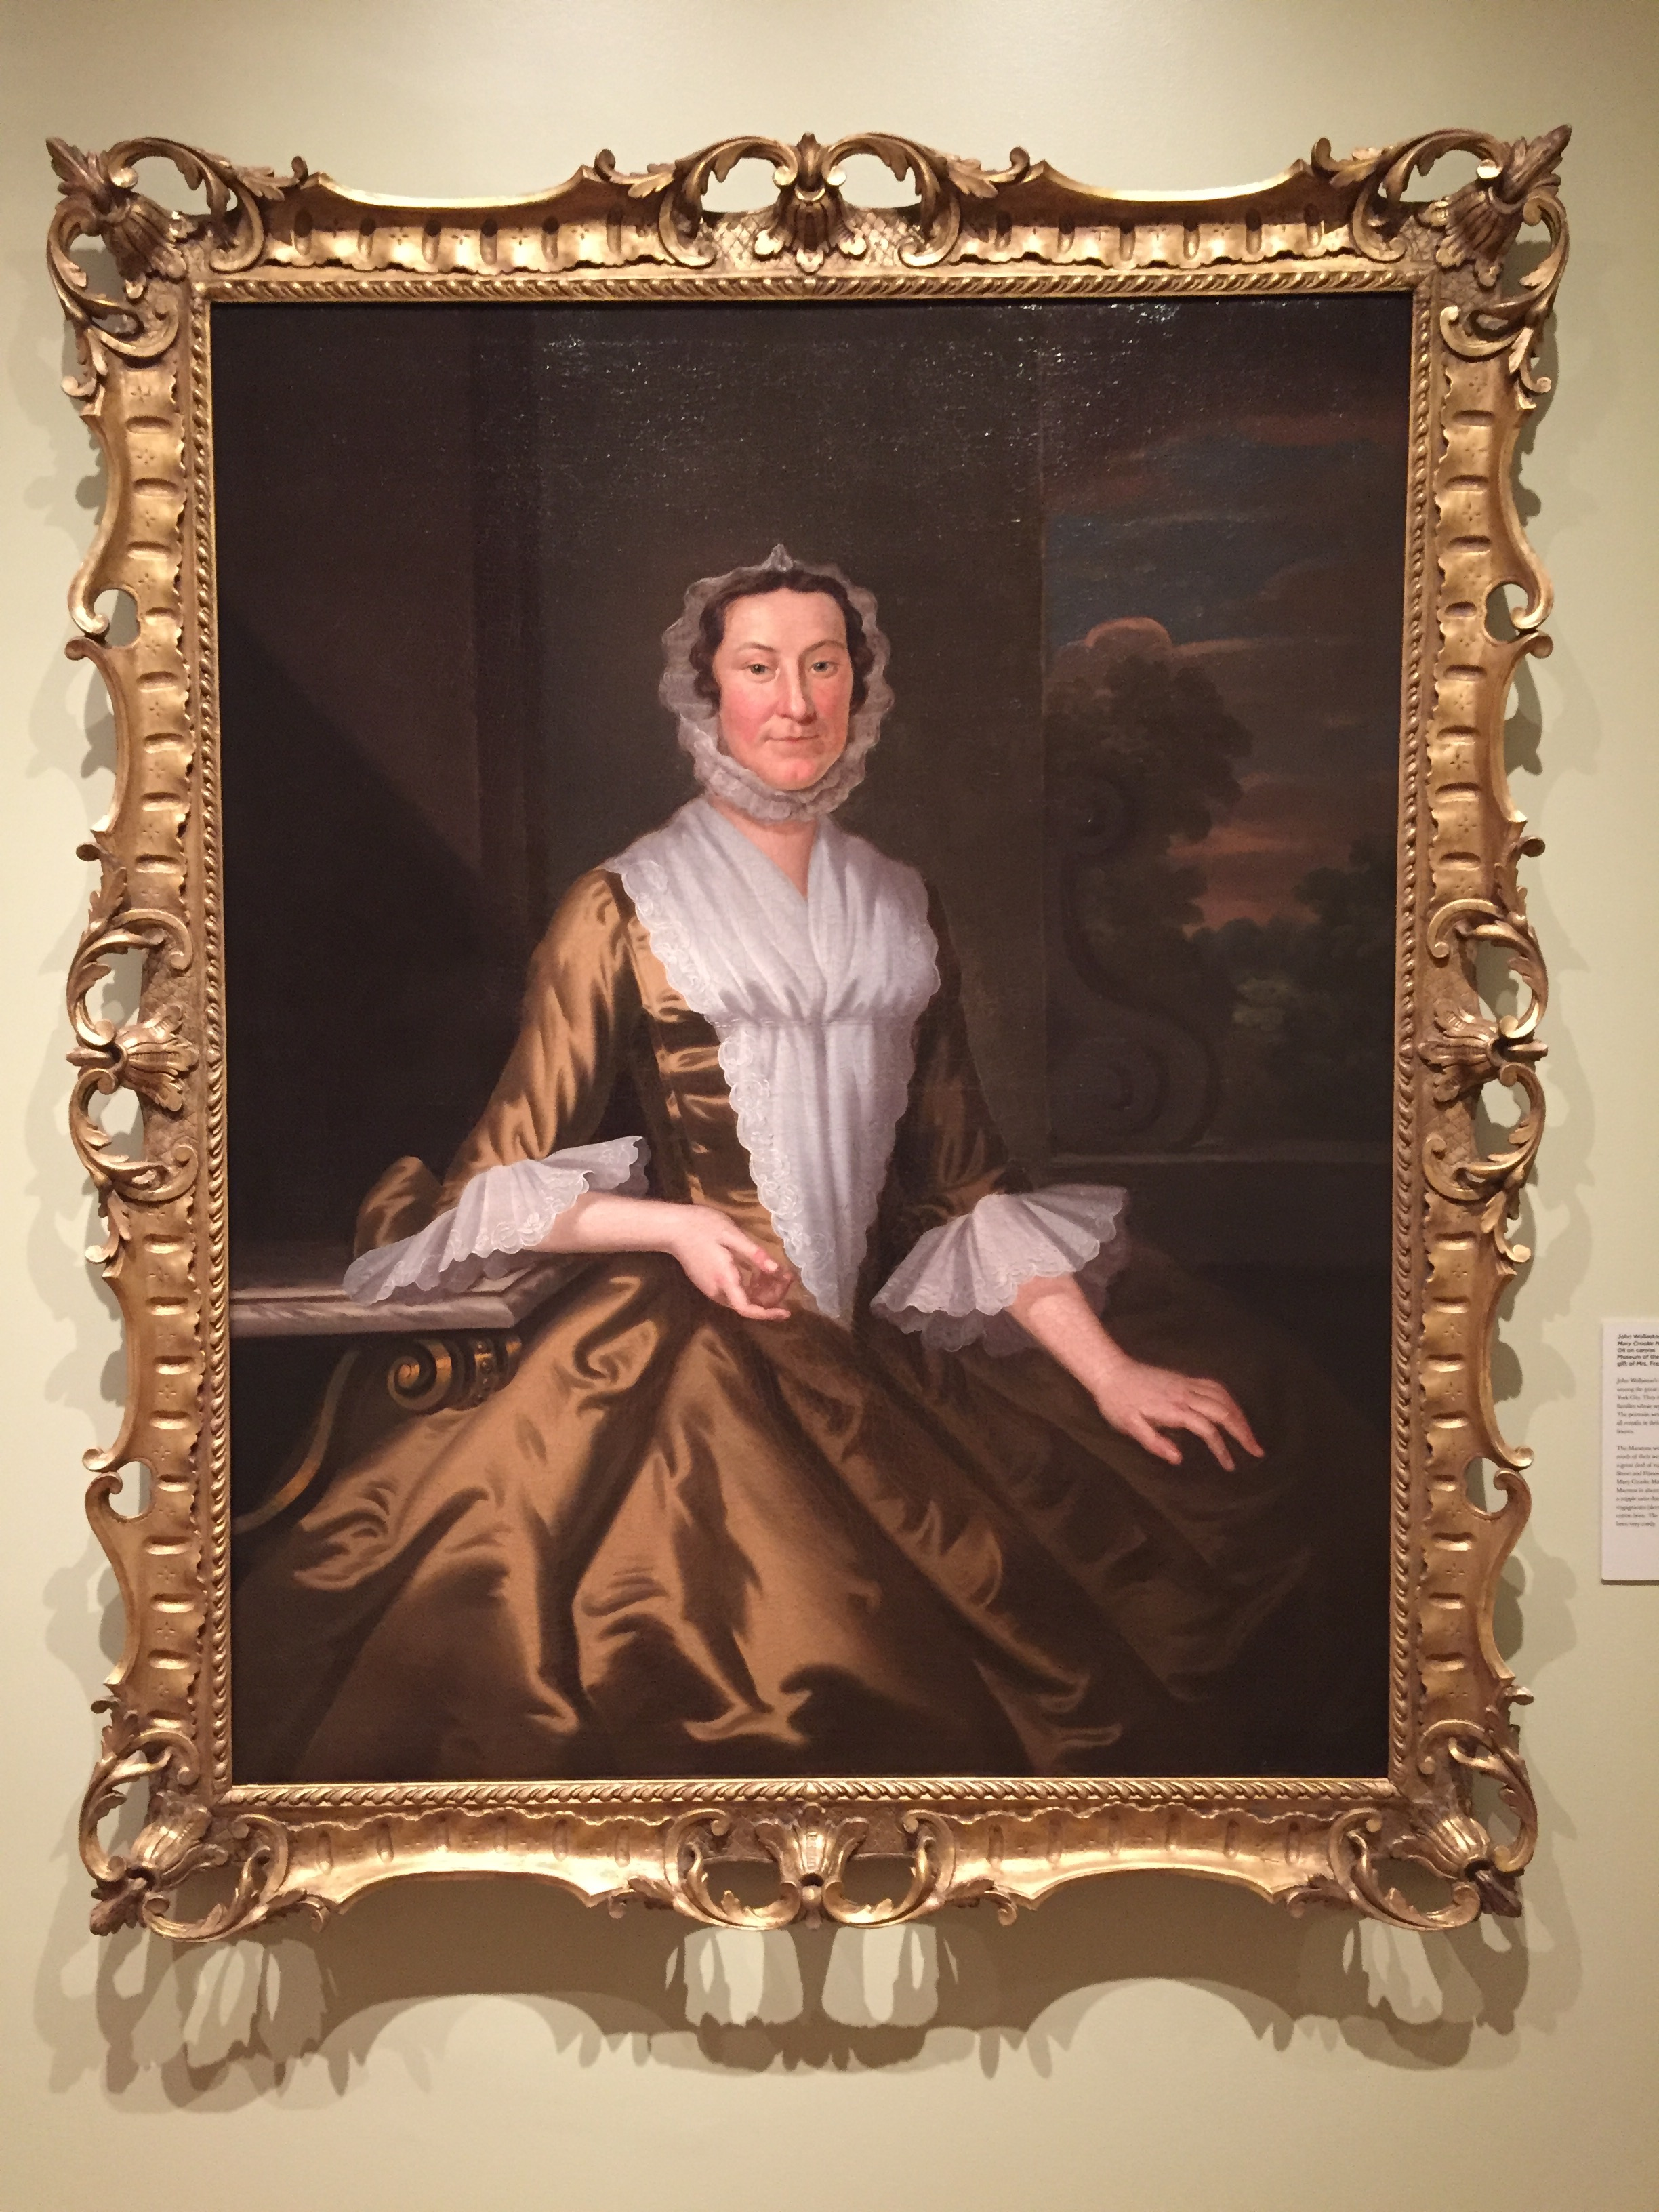 Mary Crooke Marston (Mrs. Nathaniel Marston), c.1751 by John Wollaston (1710-1775)